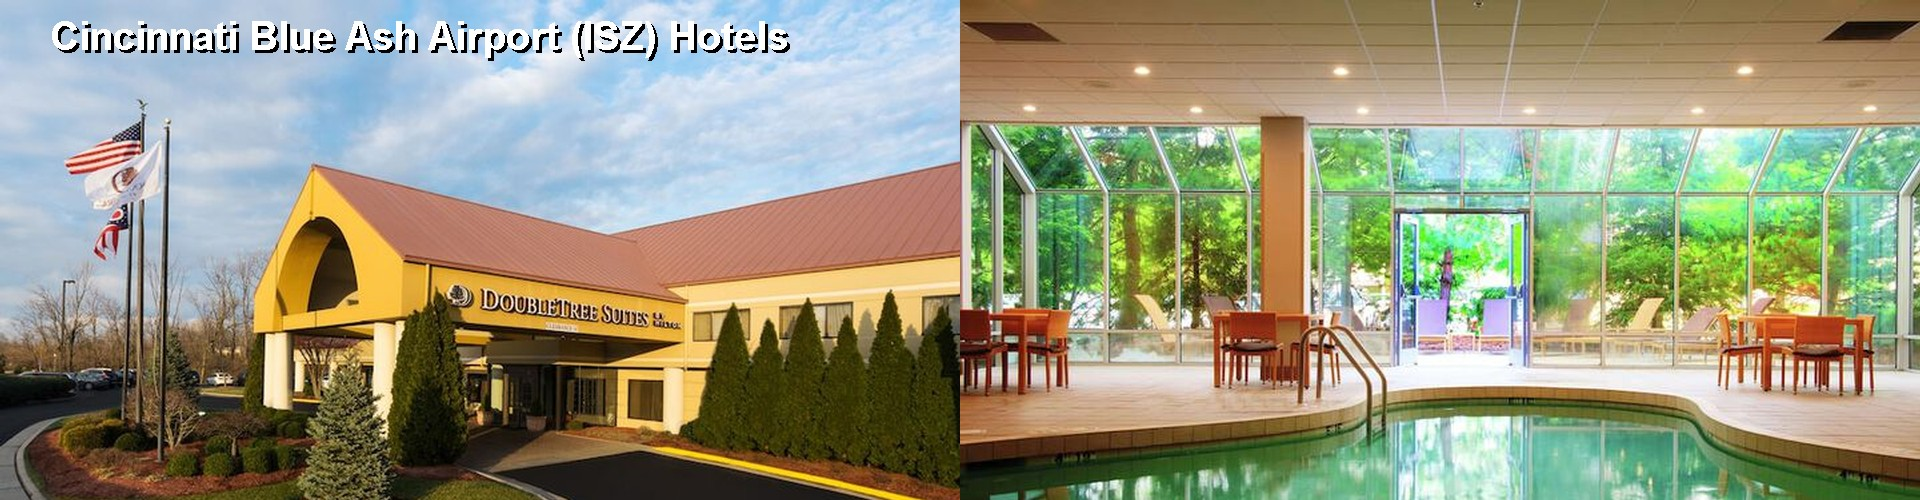 5 Best Hotels near Cincinnati Blue Ash Airport (ISZ)